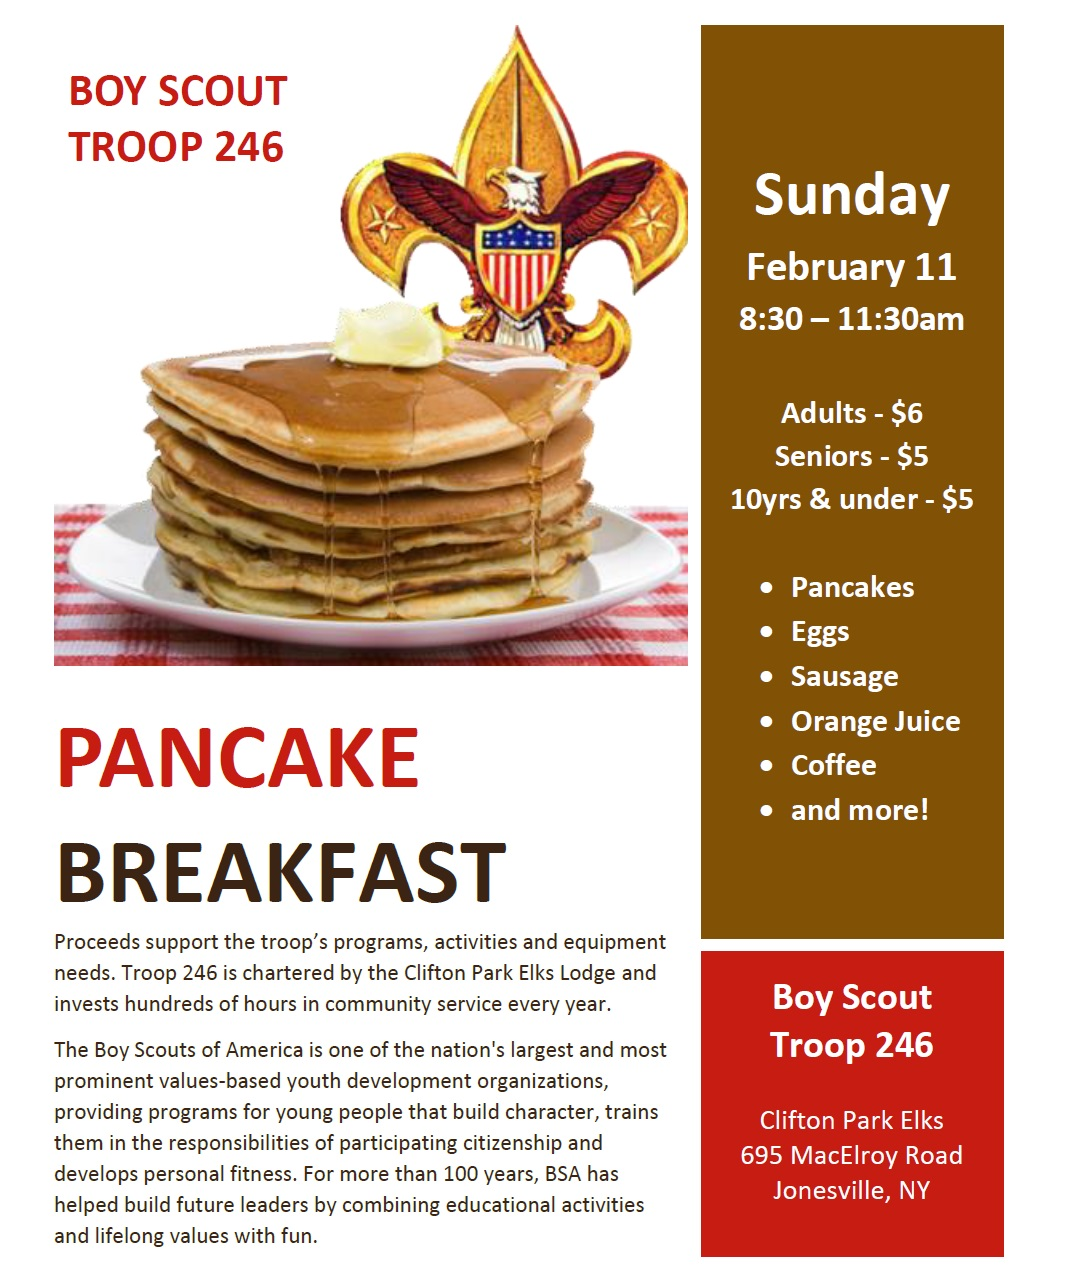 Boy Scout Troop 246 Pancake Breakfast